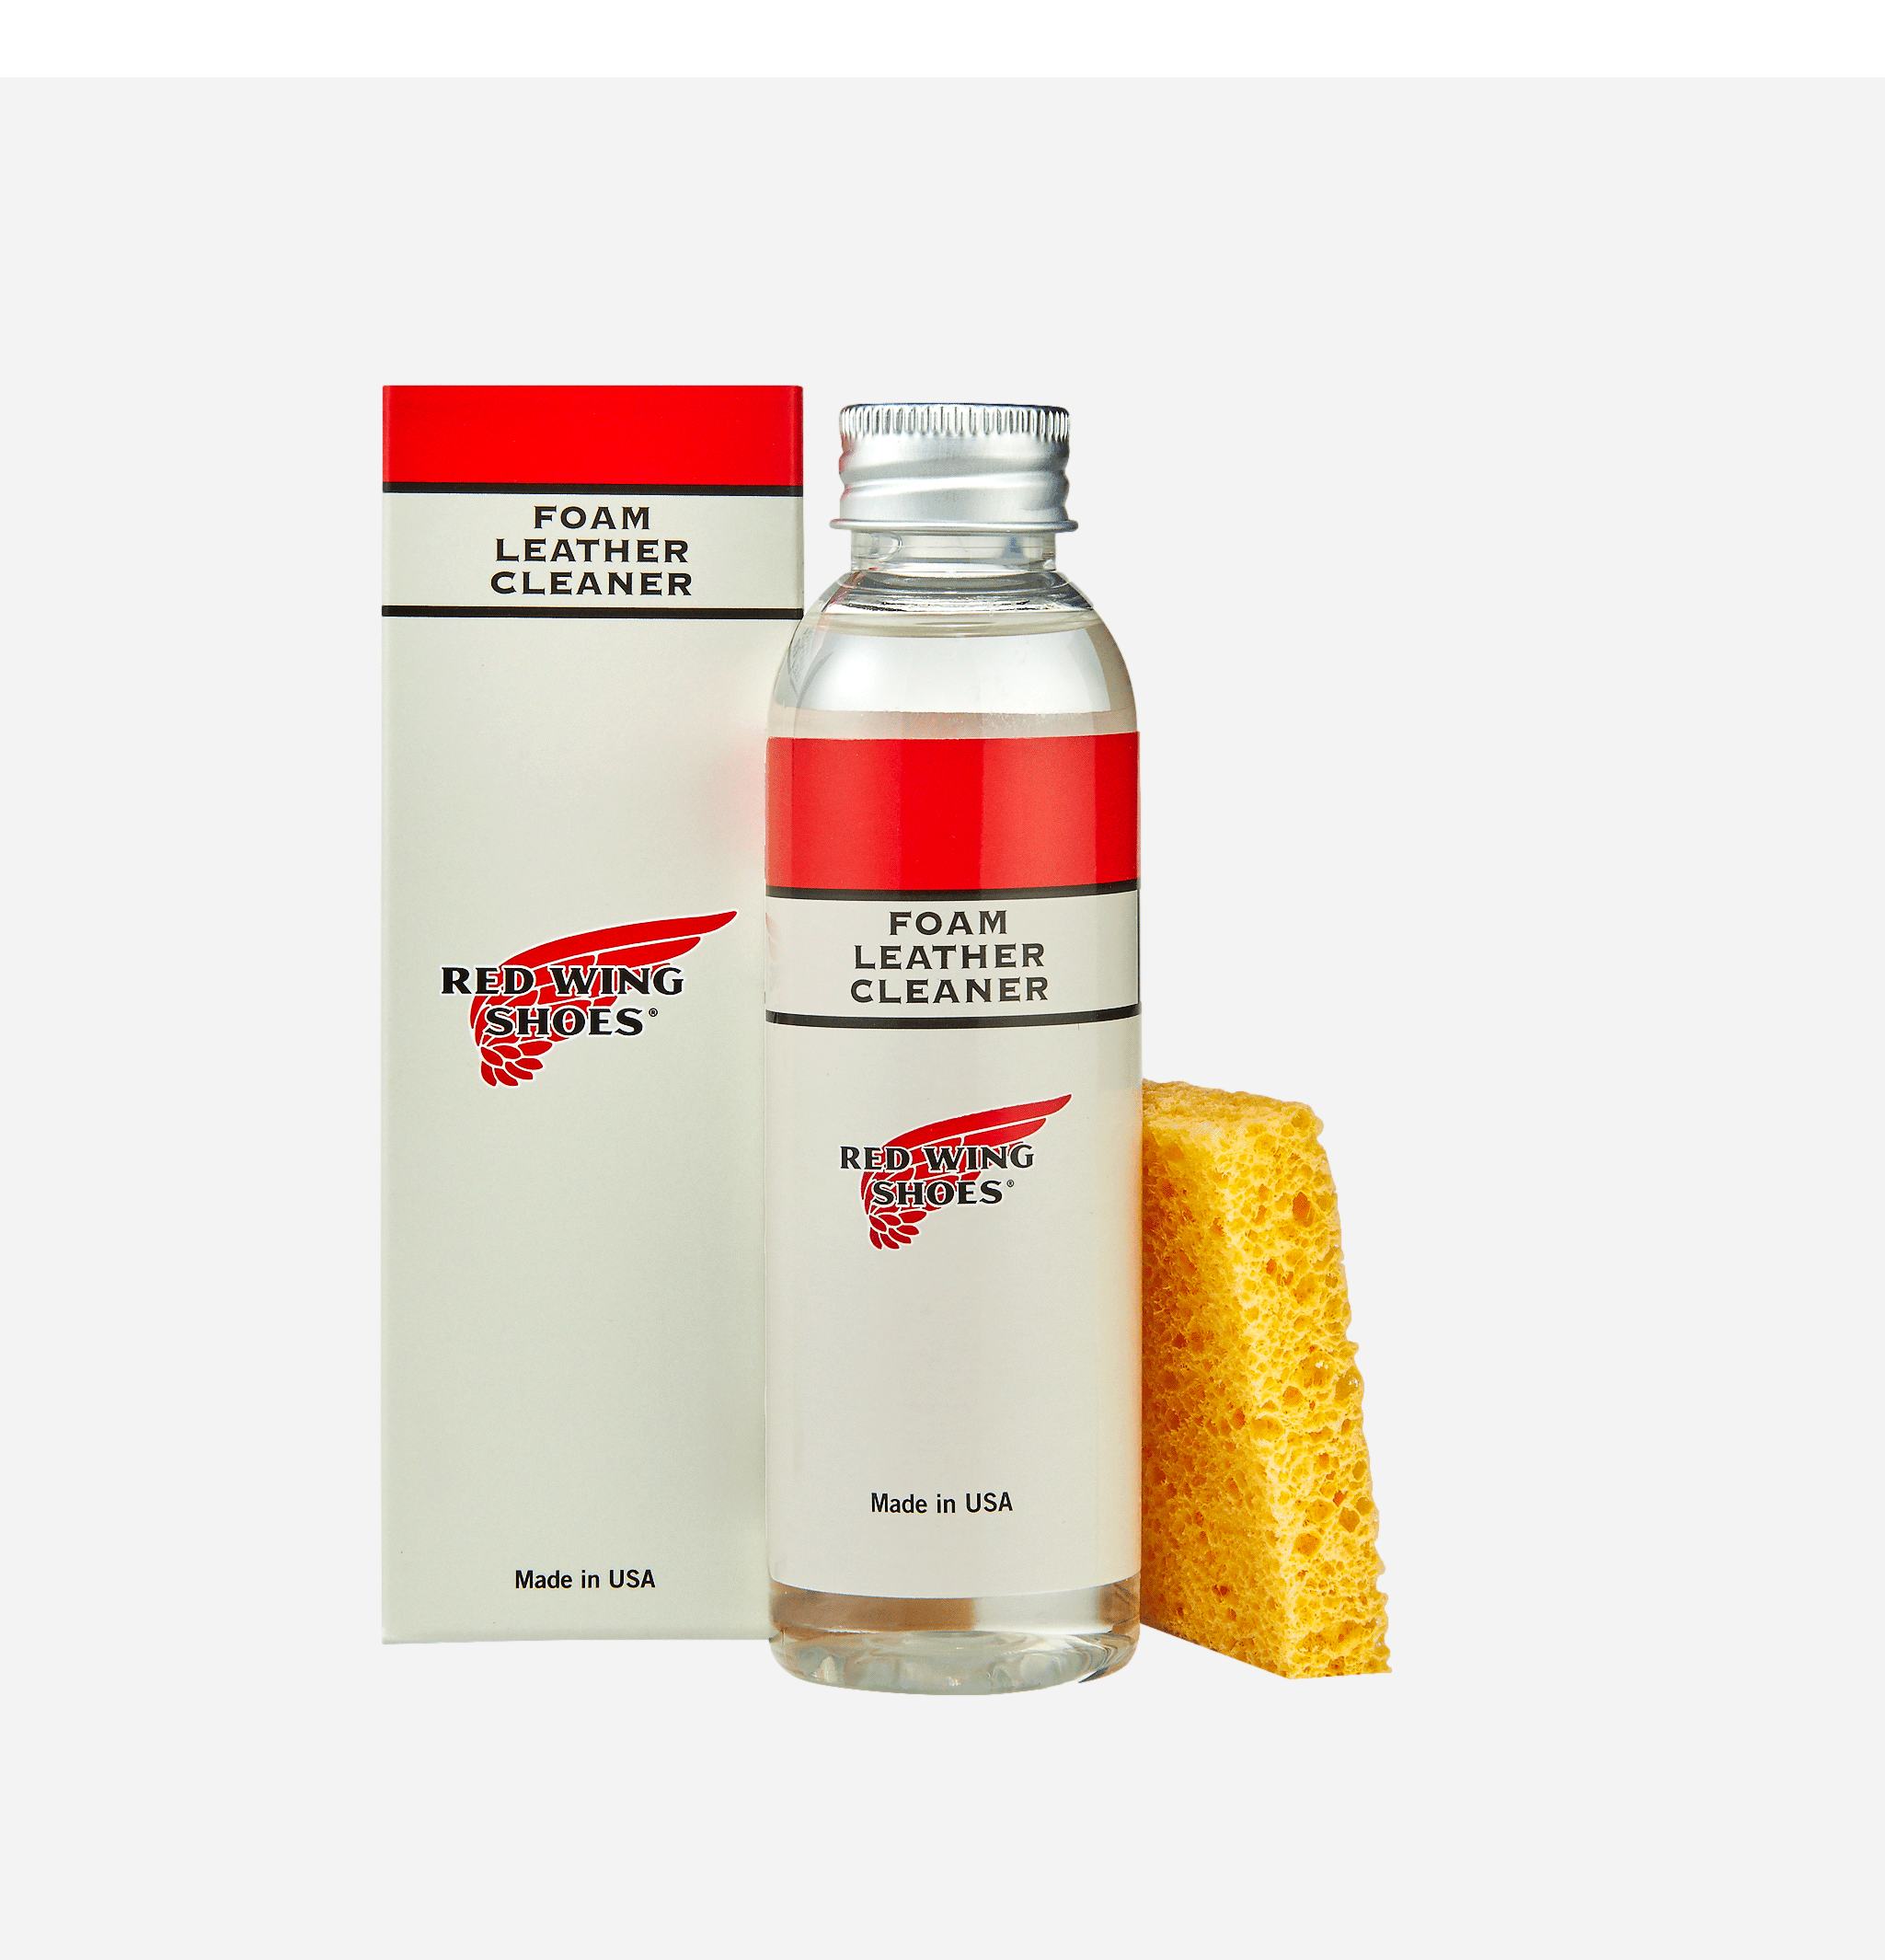 Foam Leather Cleaner